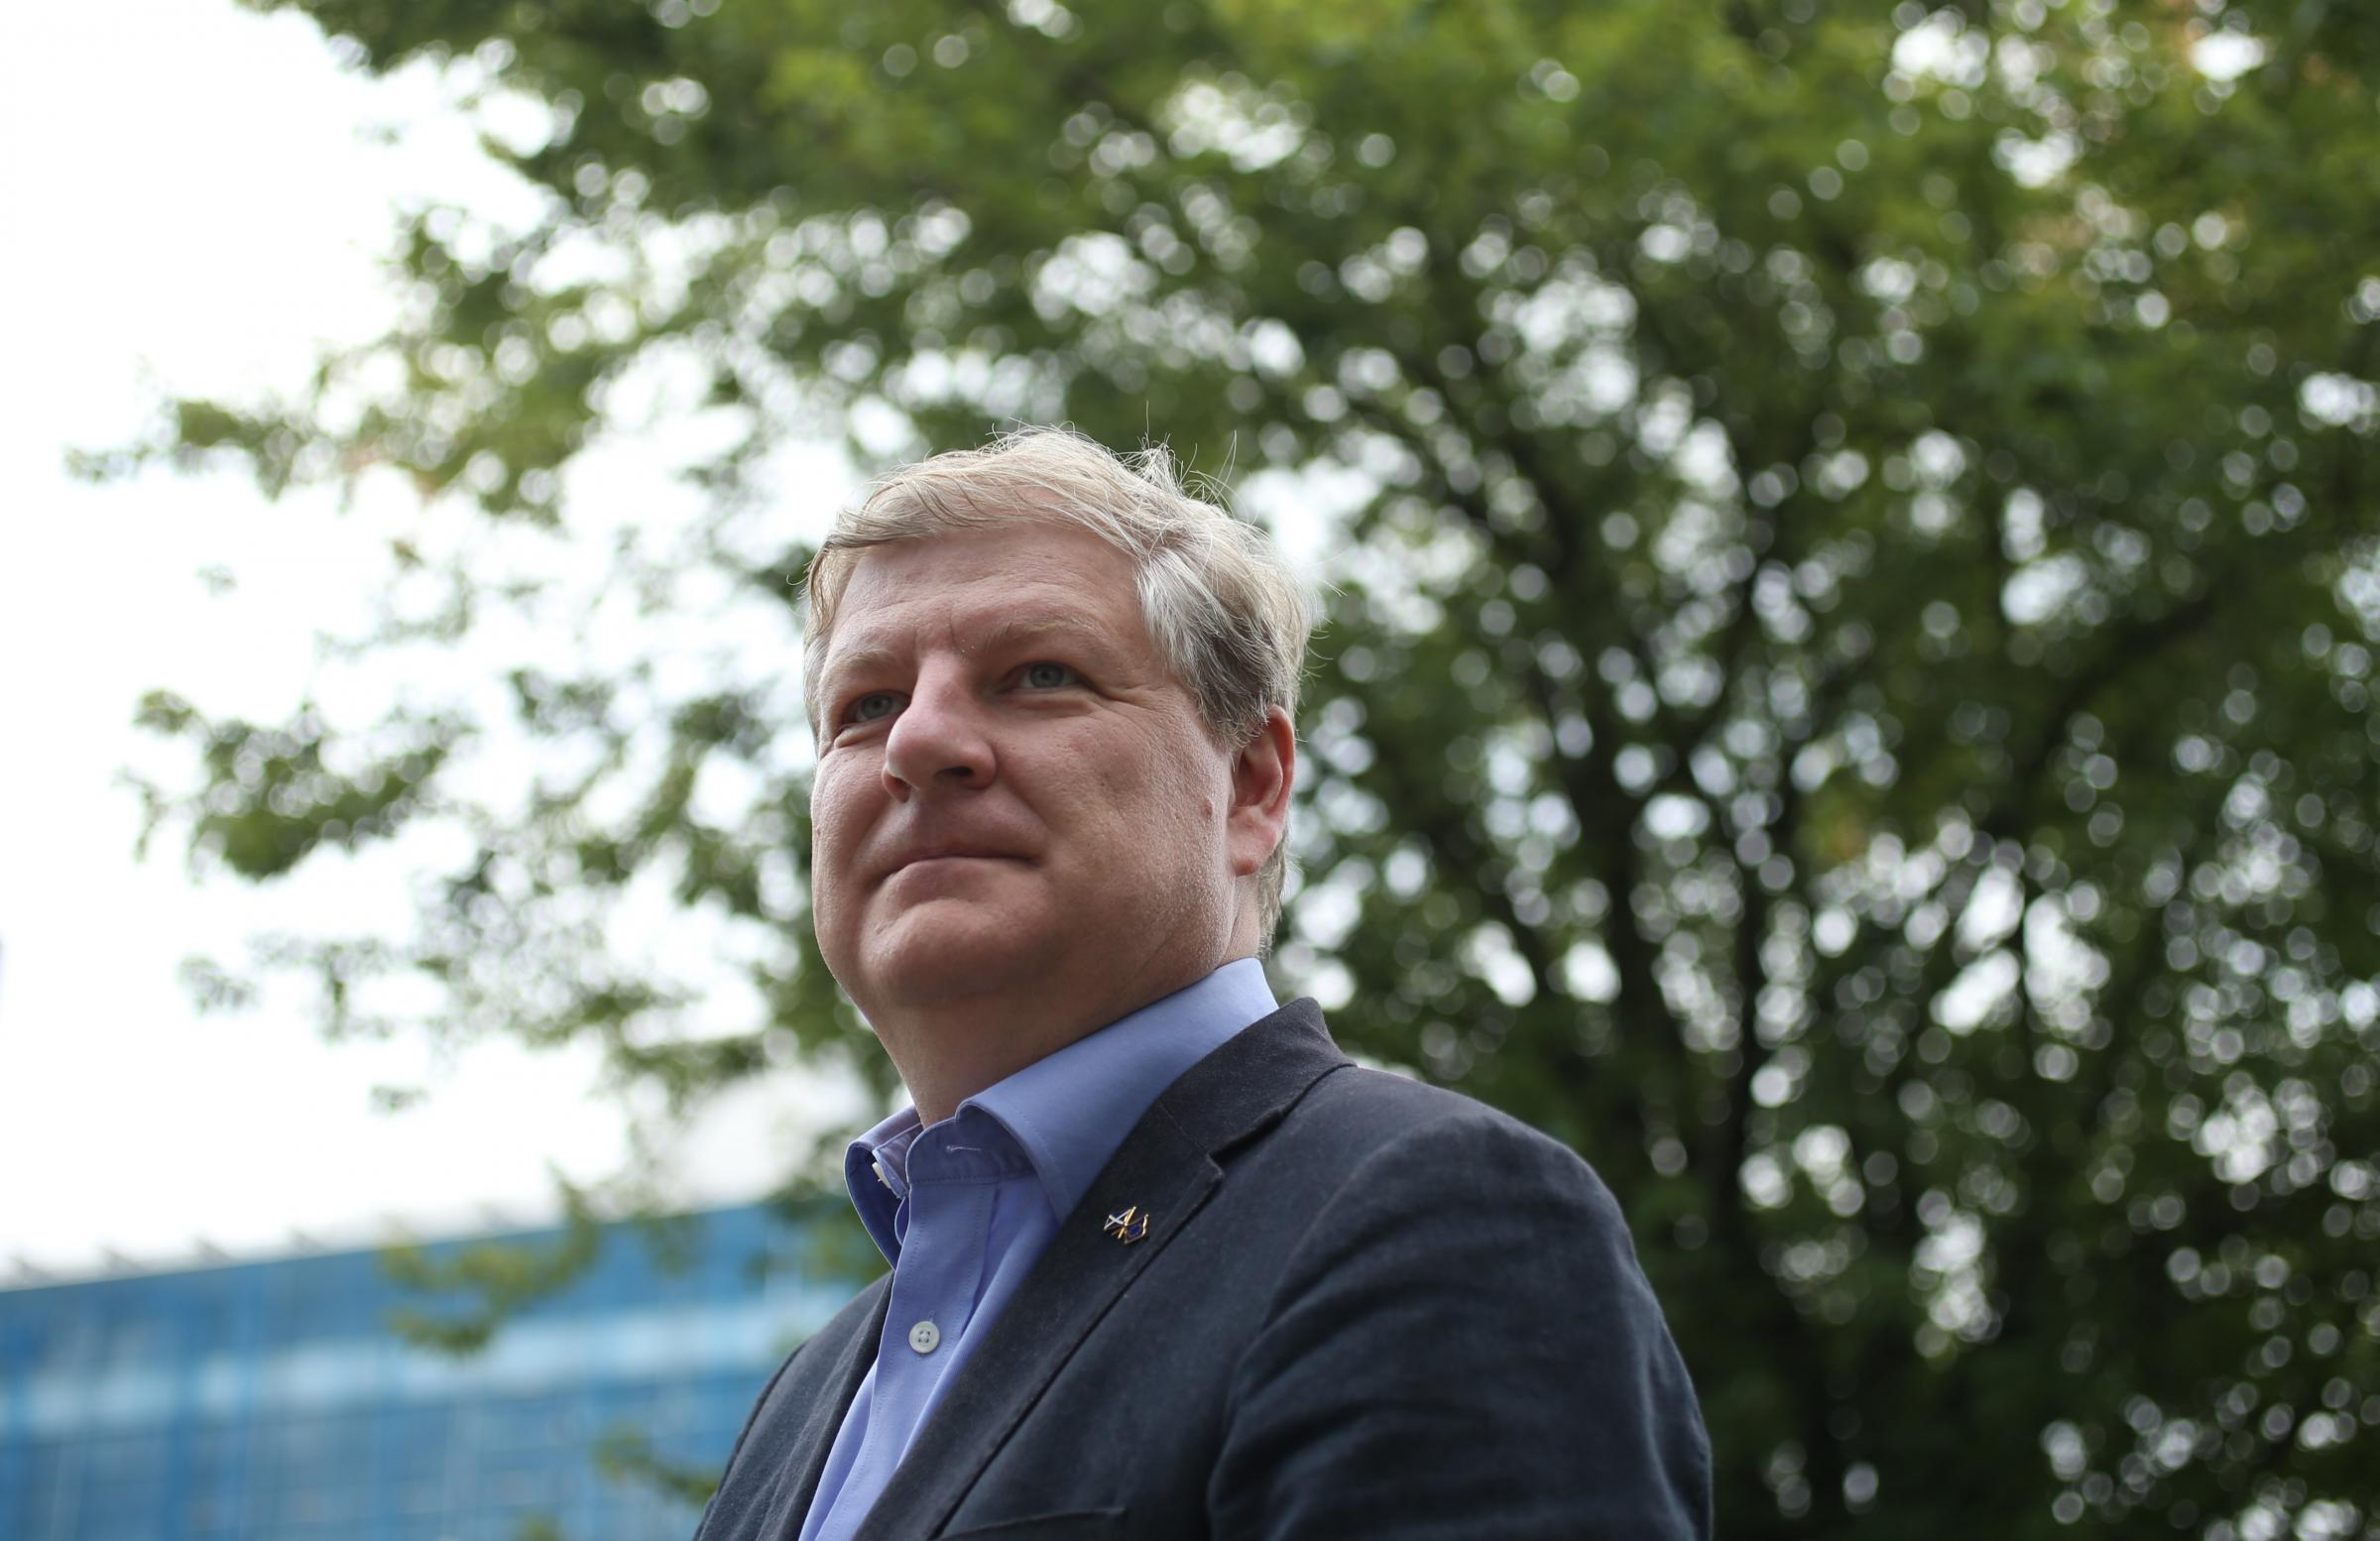 Angus Robertson possesses a quality that is rare among politicians - the ability to listen